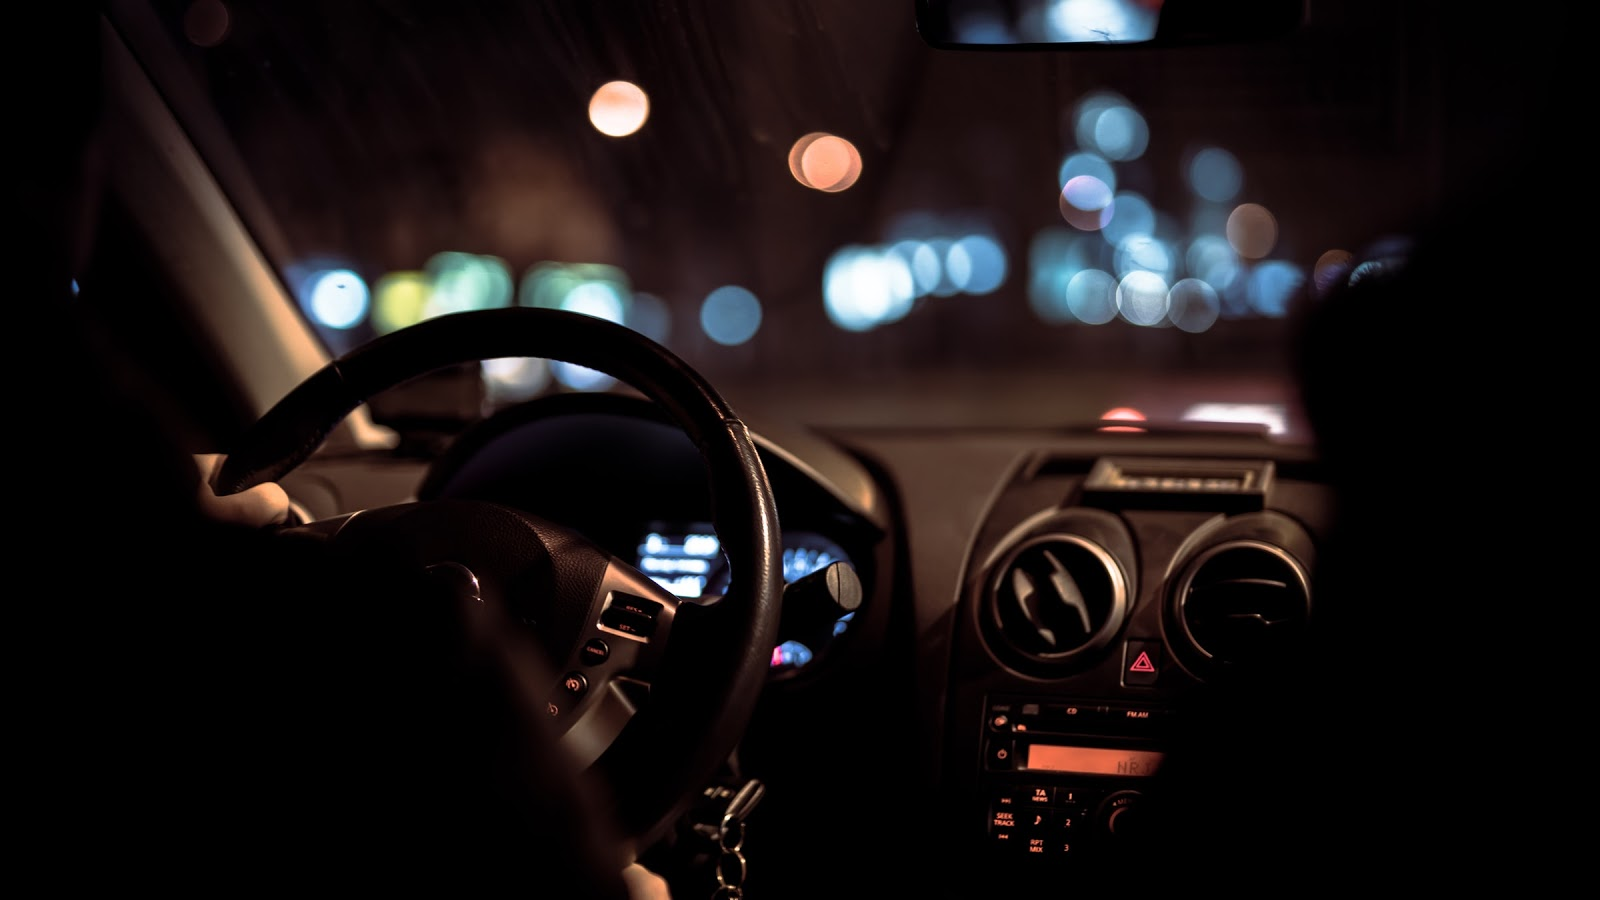 Night Shift – 5 Essential Safety Tips For Driving At Night